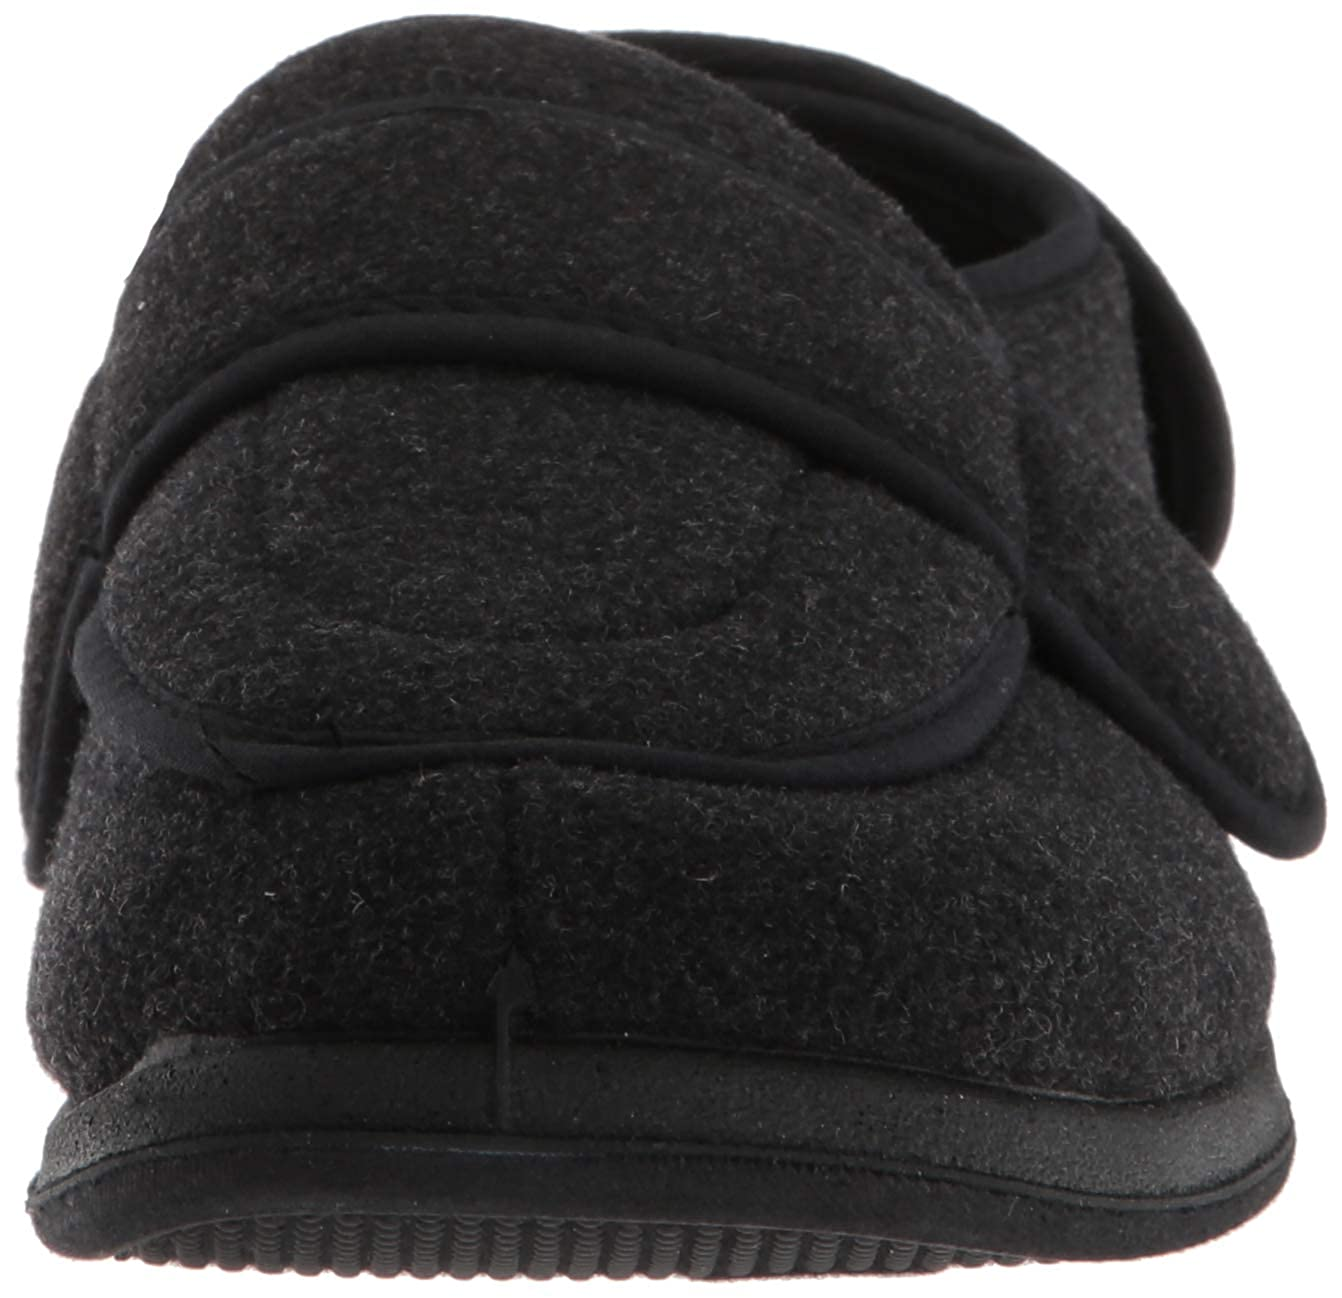 Foamtreads Mens Extra-Depth Wool Slippers